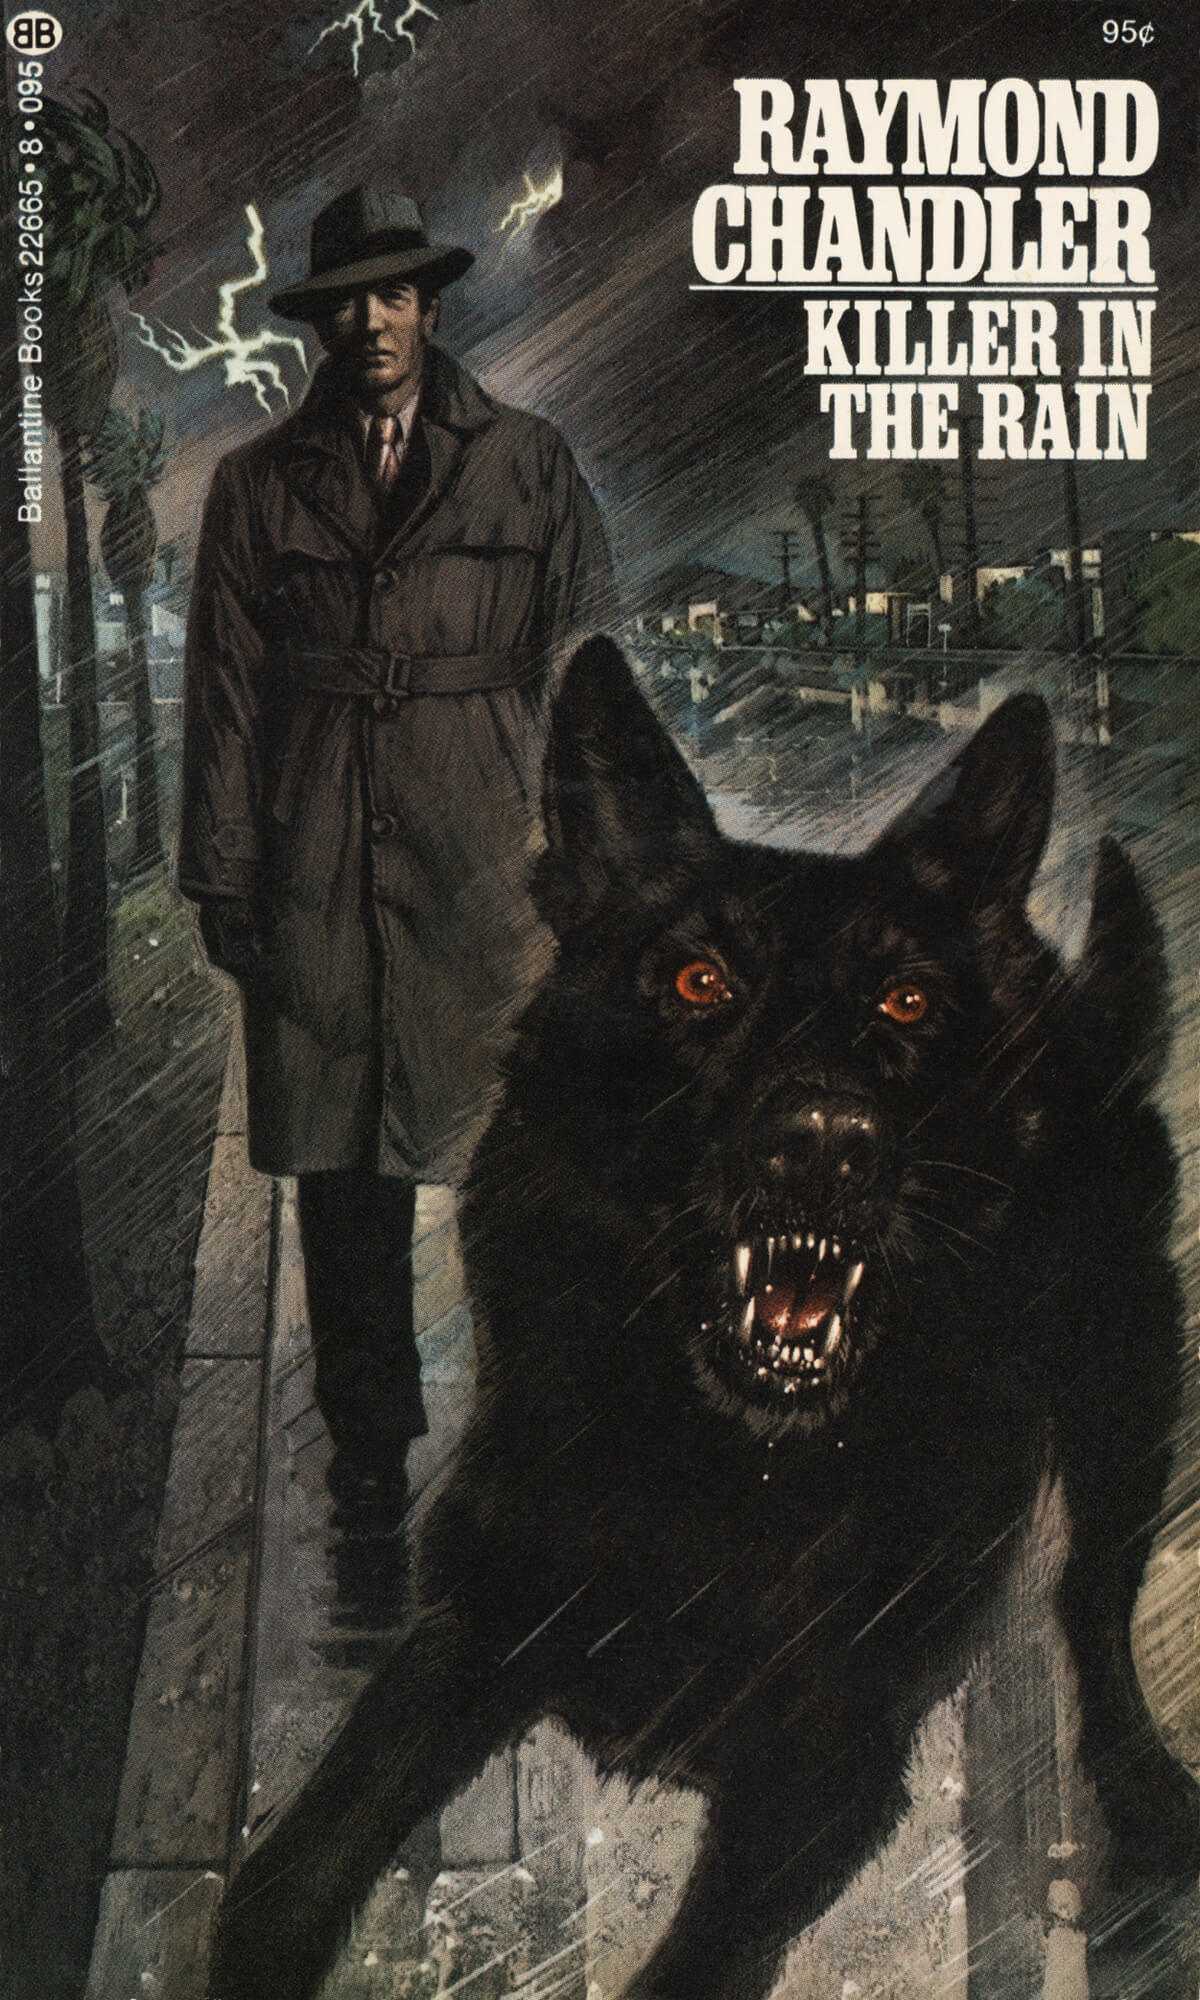 Killer in the Rain by Raymond Chandler, Cover by Tom Adams